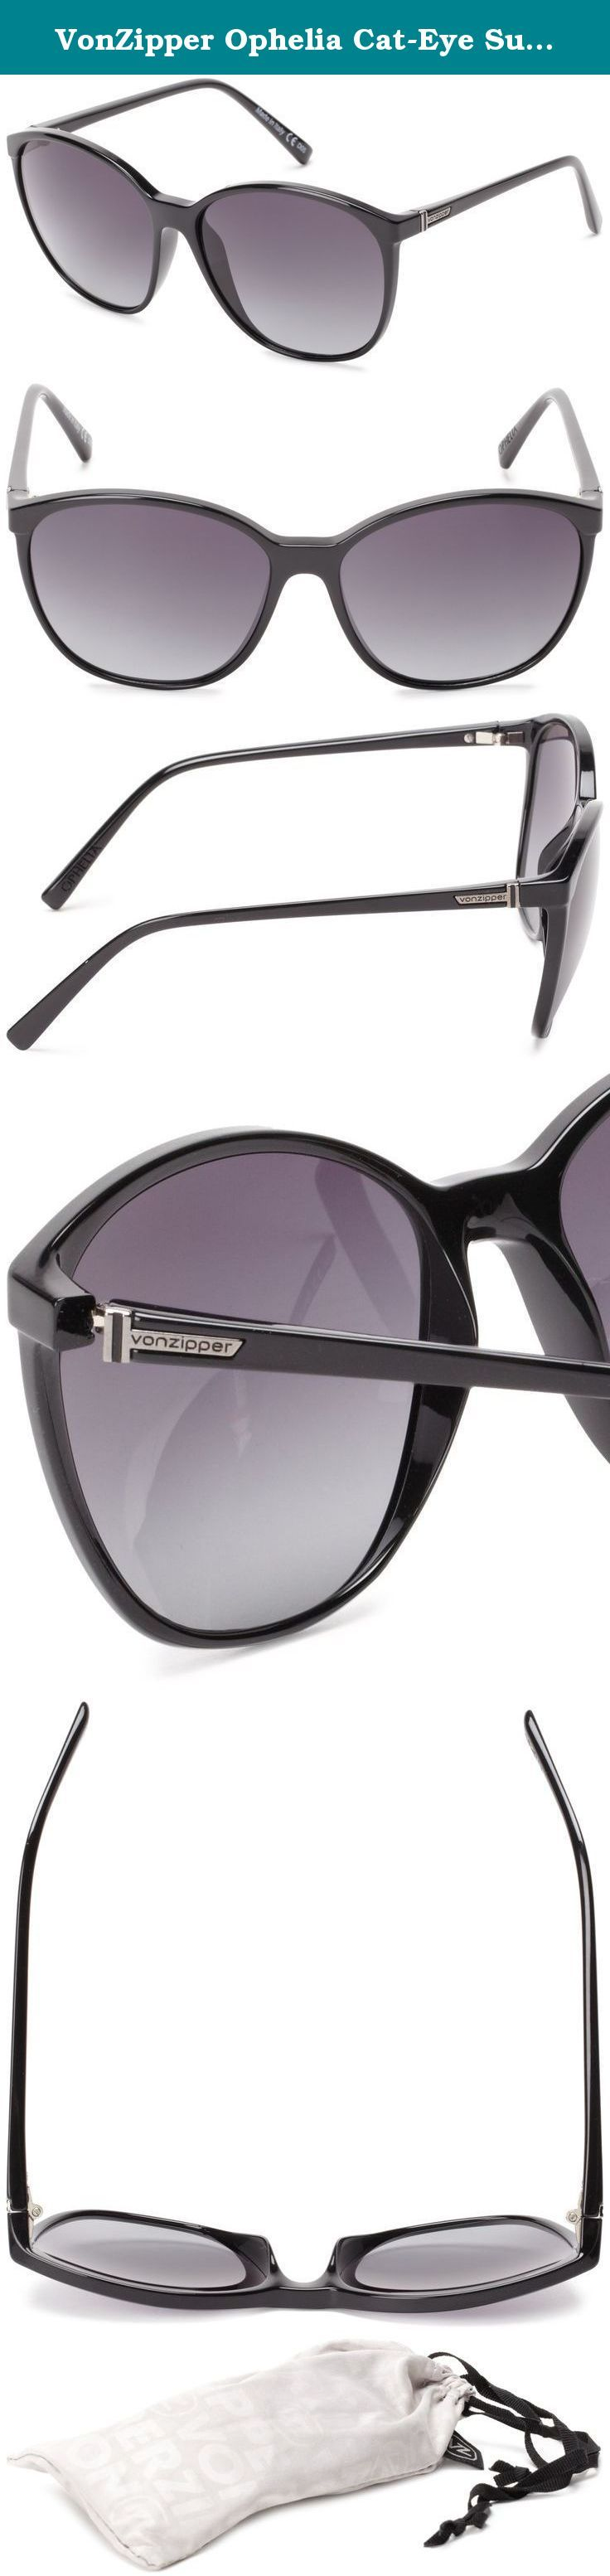 VonZipper Ophelia Cat-Eye Sunglasses,Black Gloss,One Size. Make every summer a Summer of Love in the '60s-inspired Von Zipper Ophelia Women's Sunglasses. The rounded Grilamid frame gives them a retro look, while shatter-resistant polycarbonate lenses provide durability so that the Ophelia stands the test of time physically as well as style-wise.